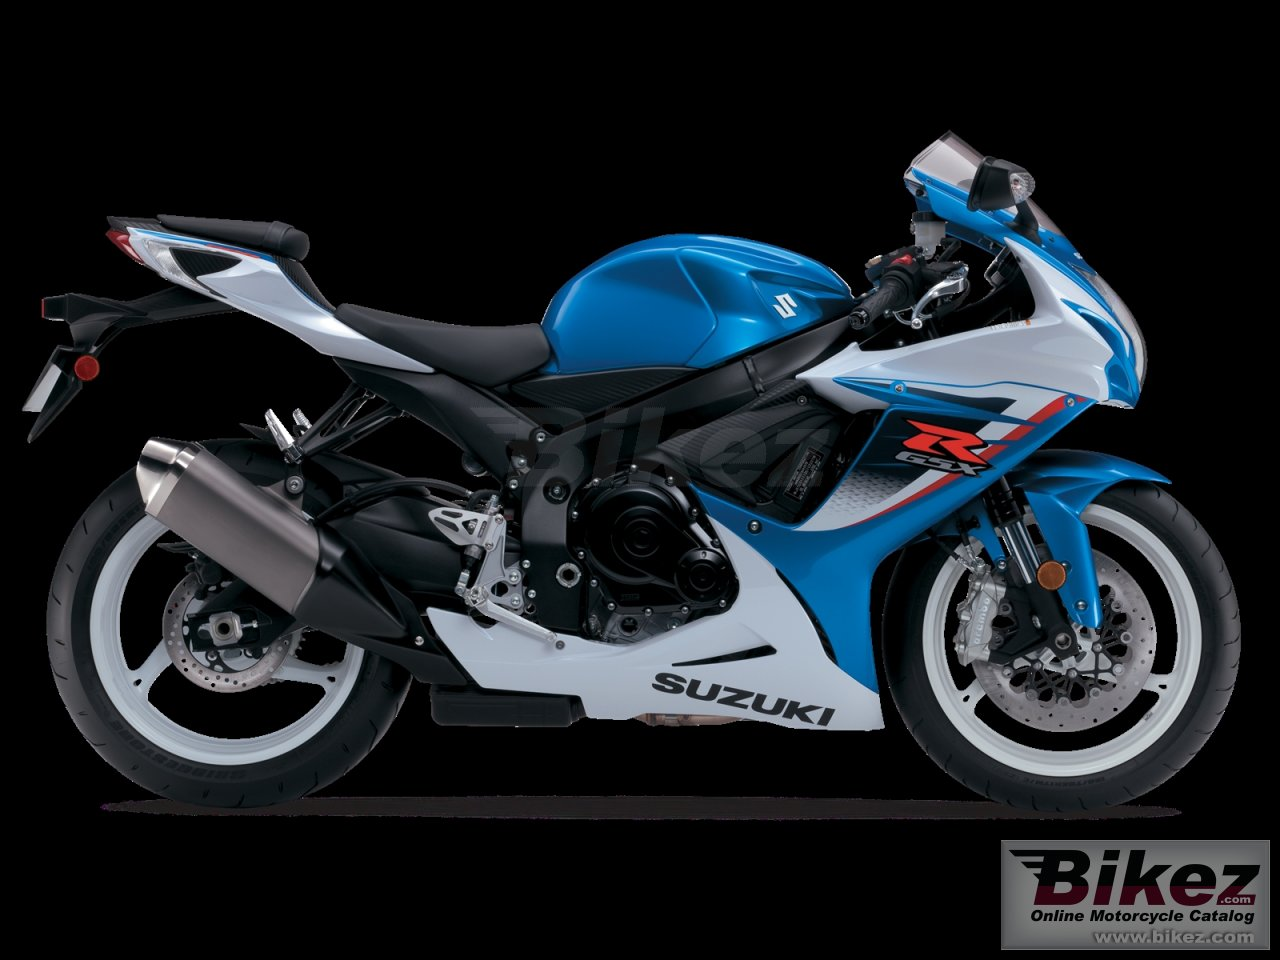 Big Suzuki gsx-r600 picture and wallpaper from Bikez.com